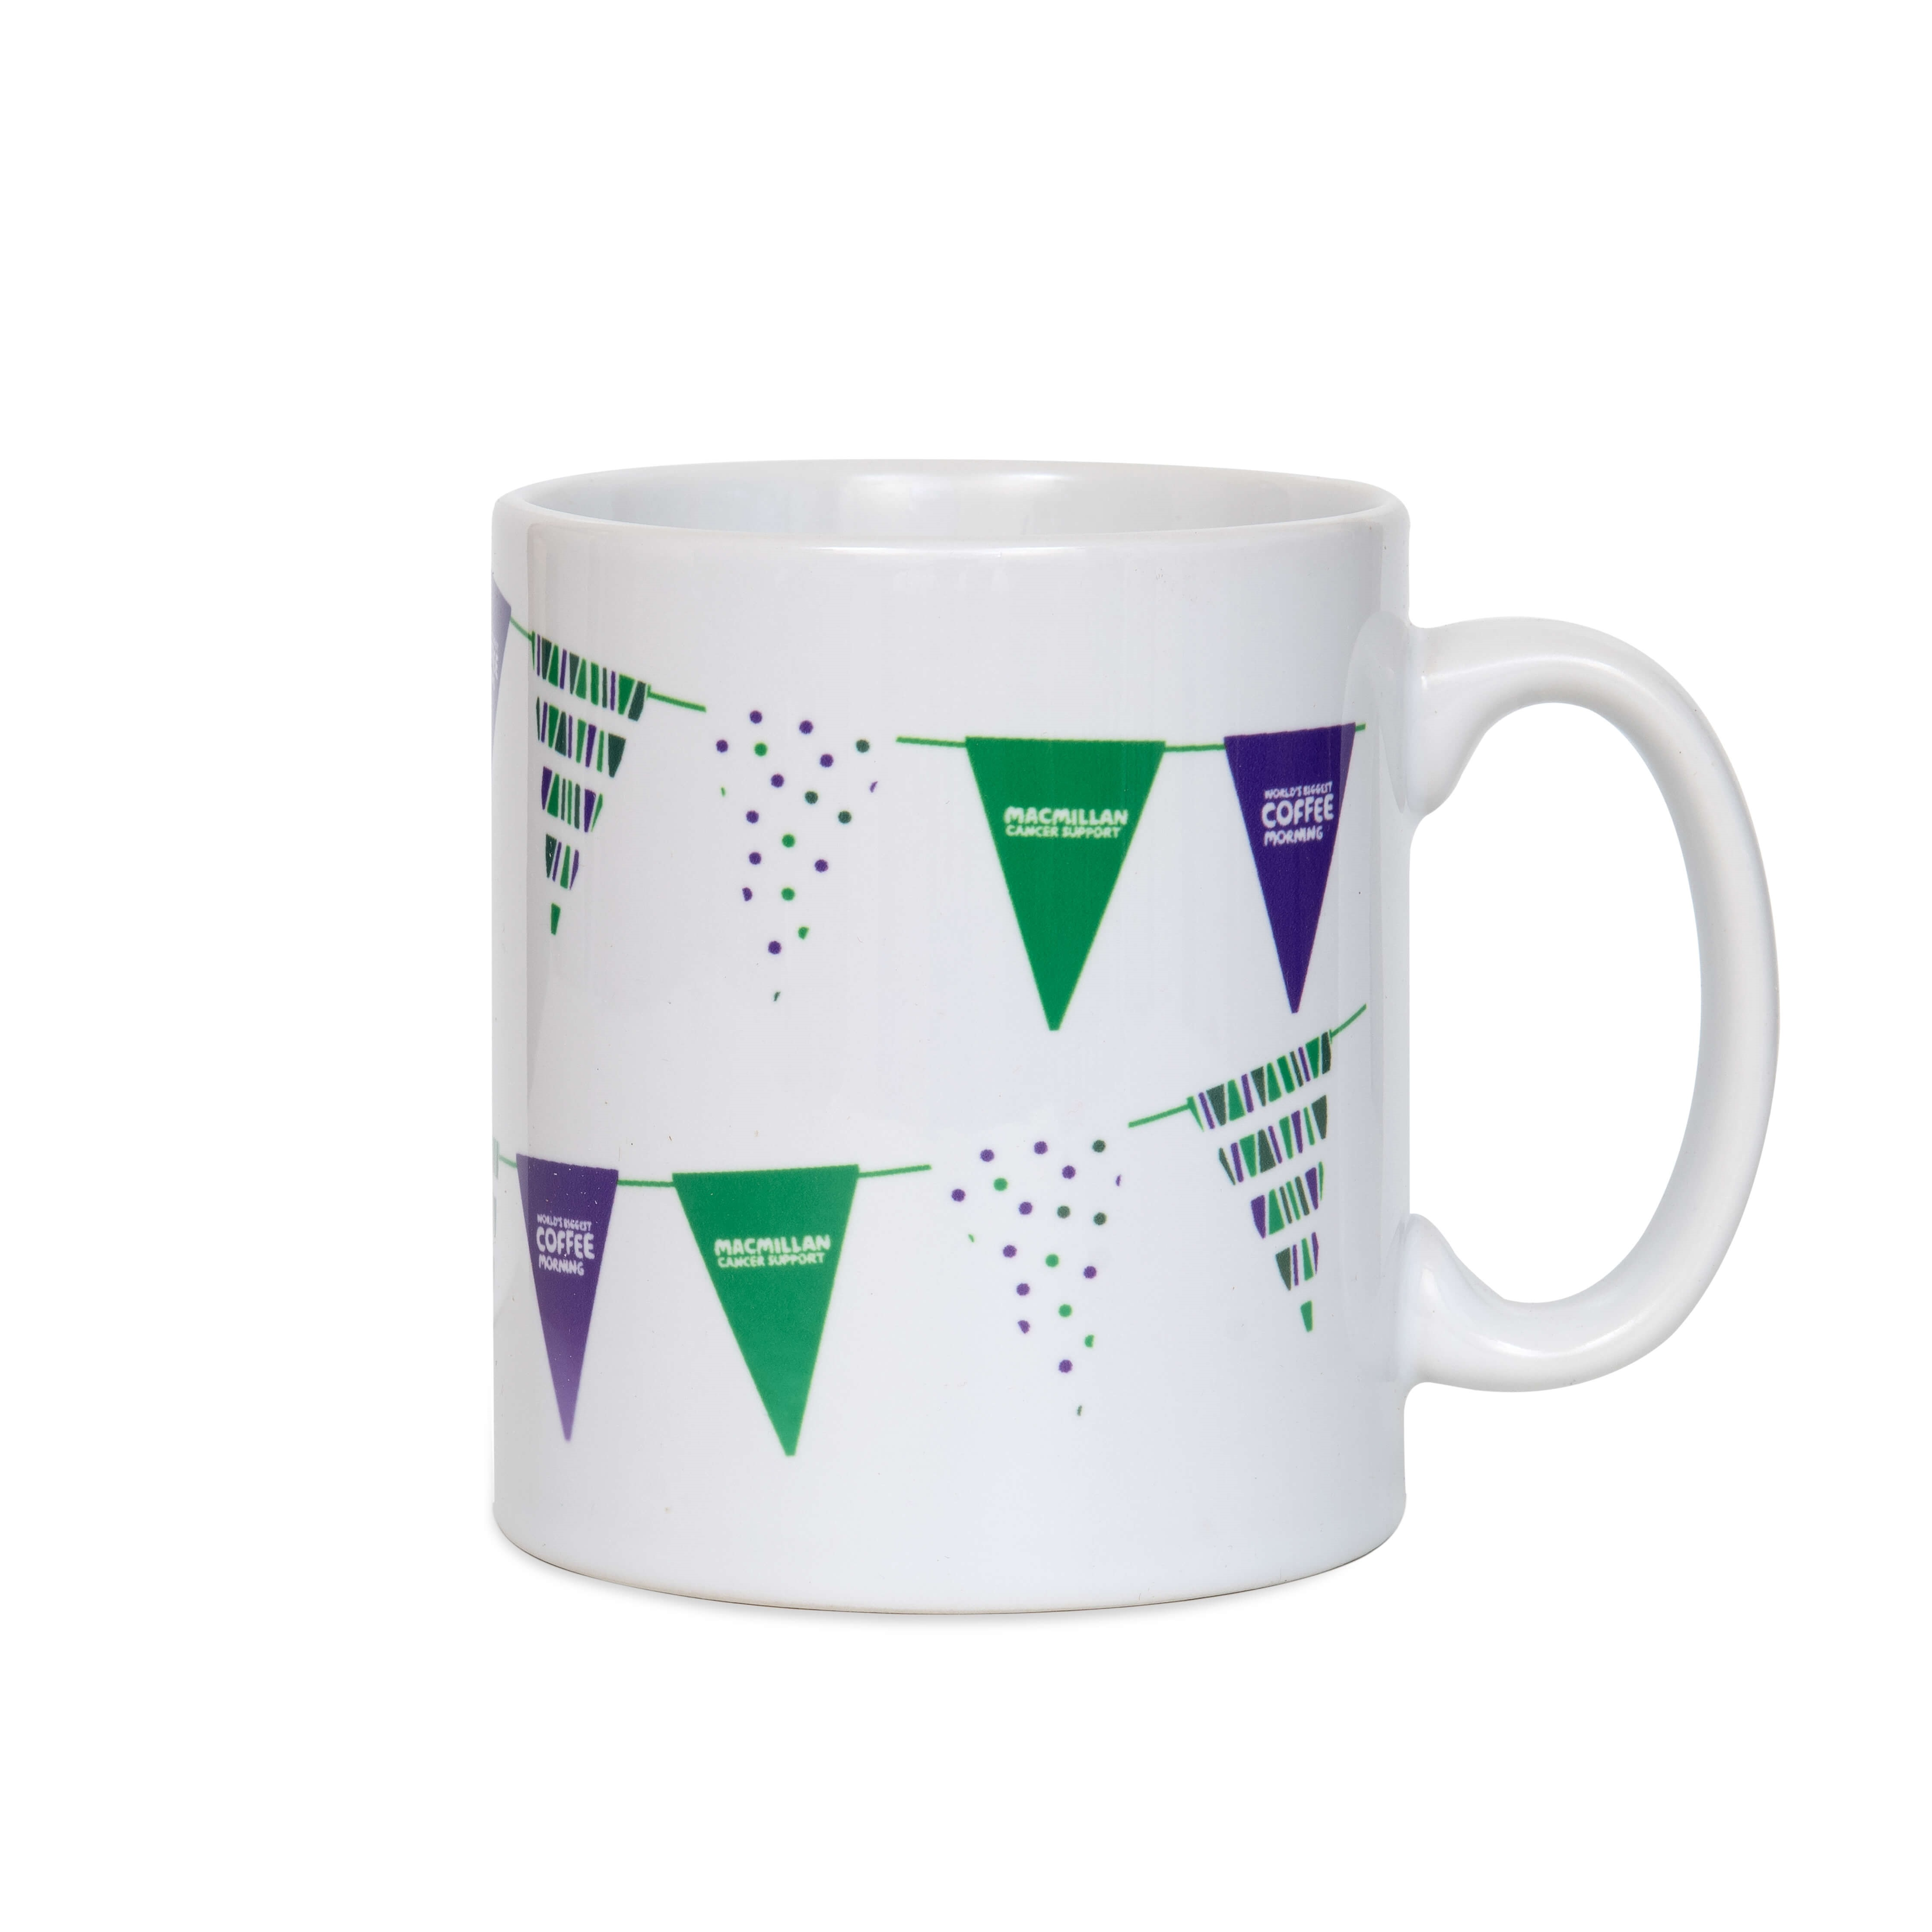 White mug with Coffee Morning bunting printed around the outside.